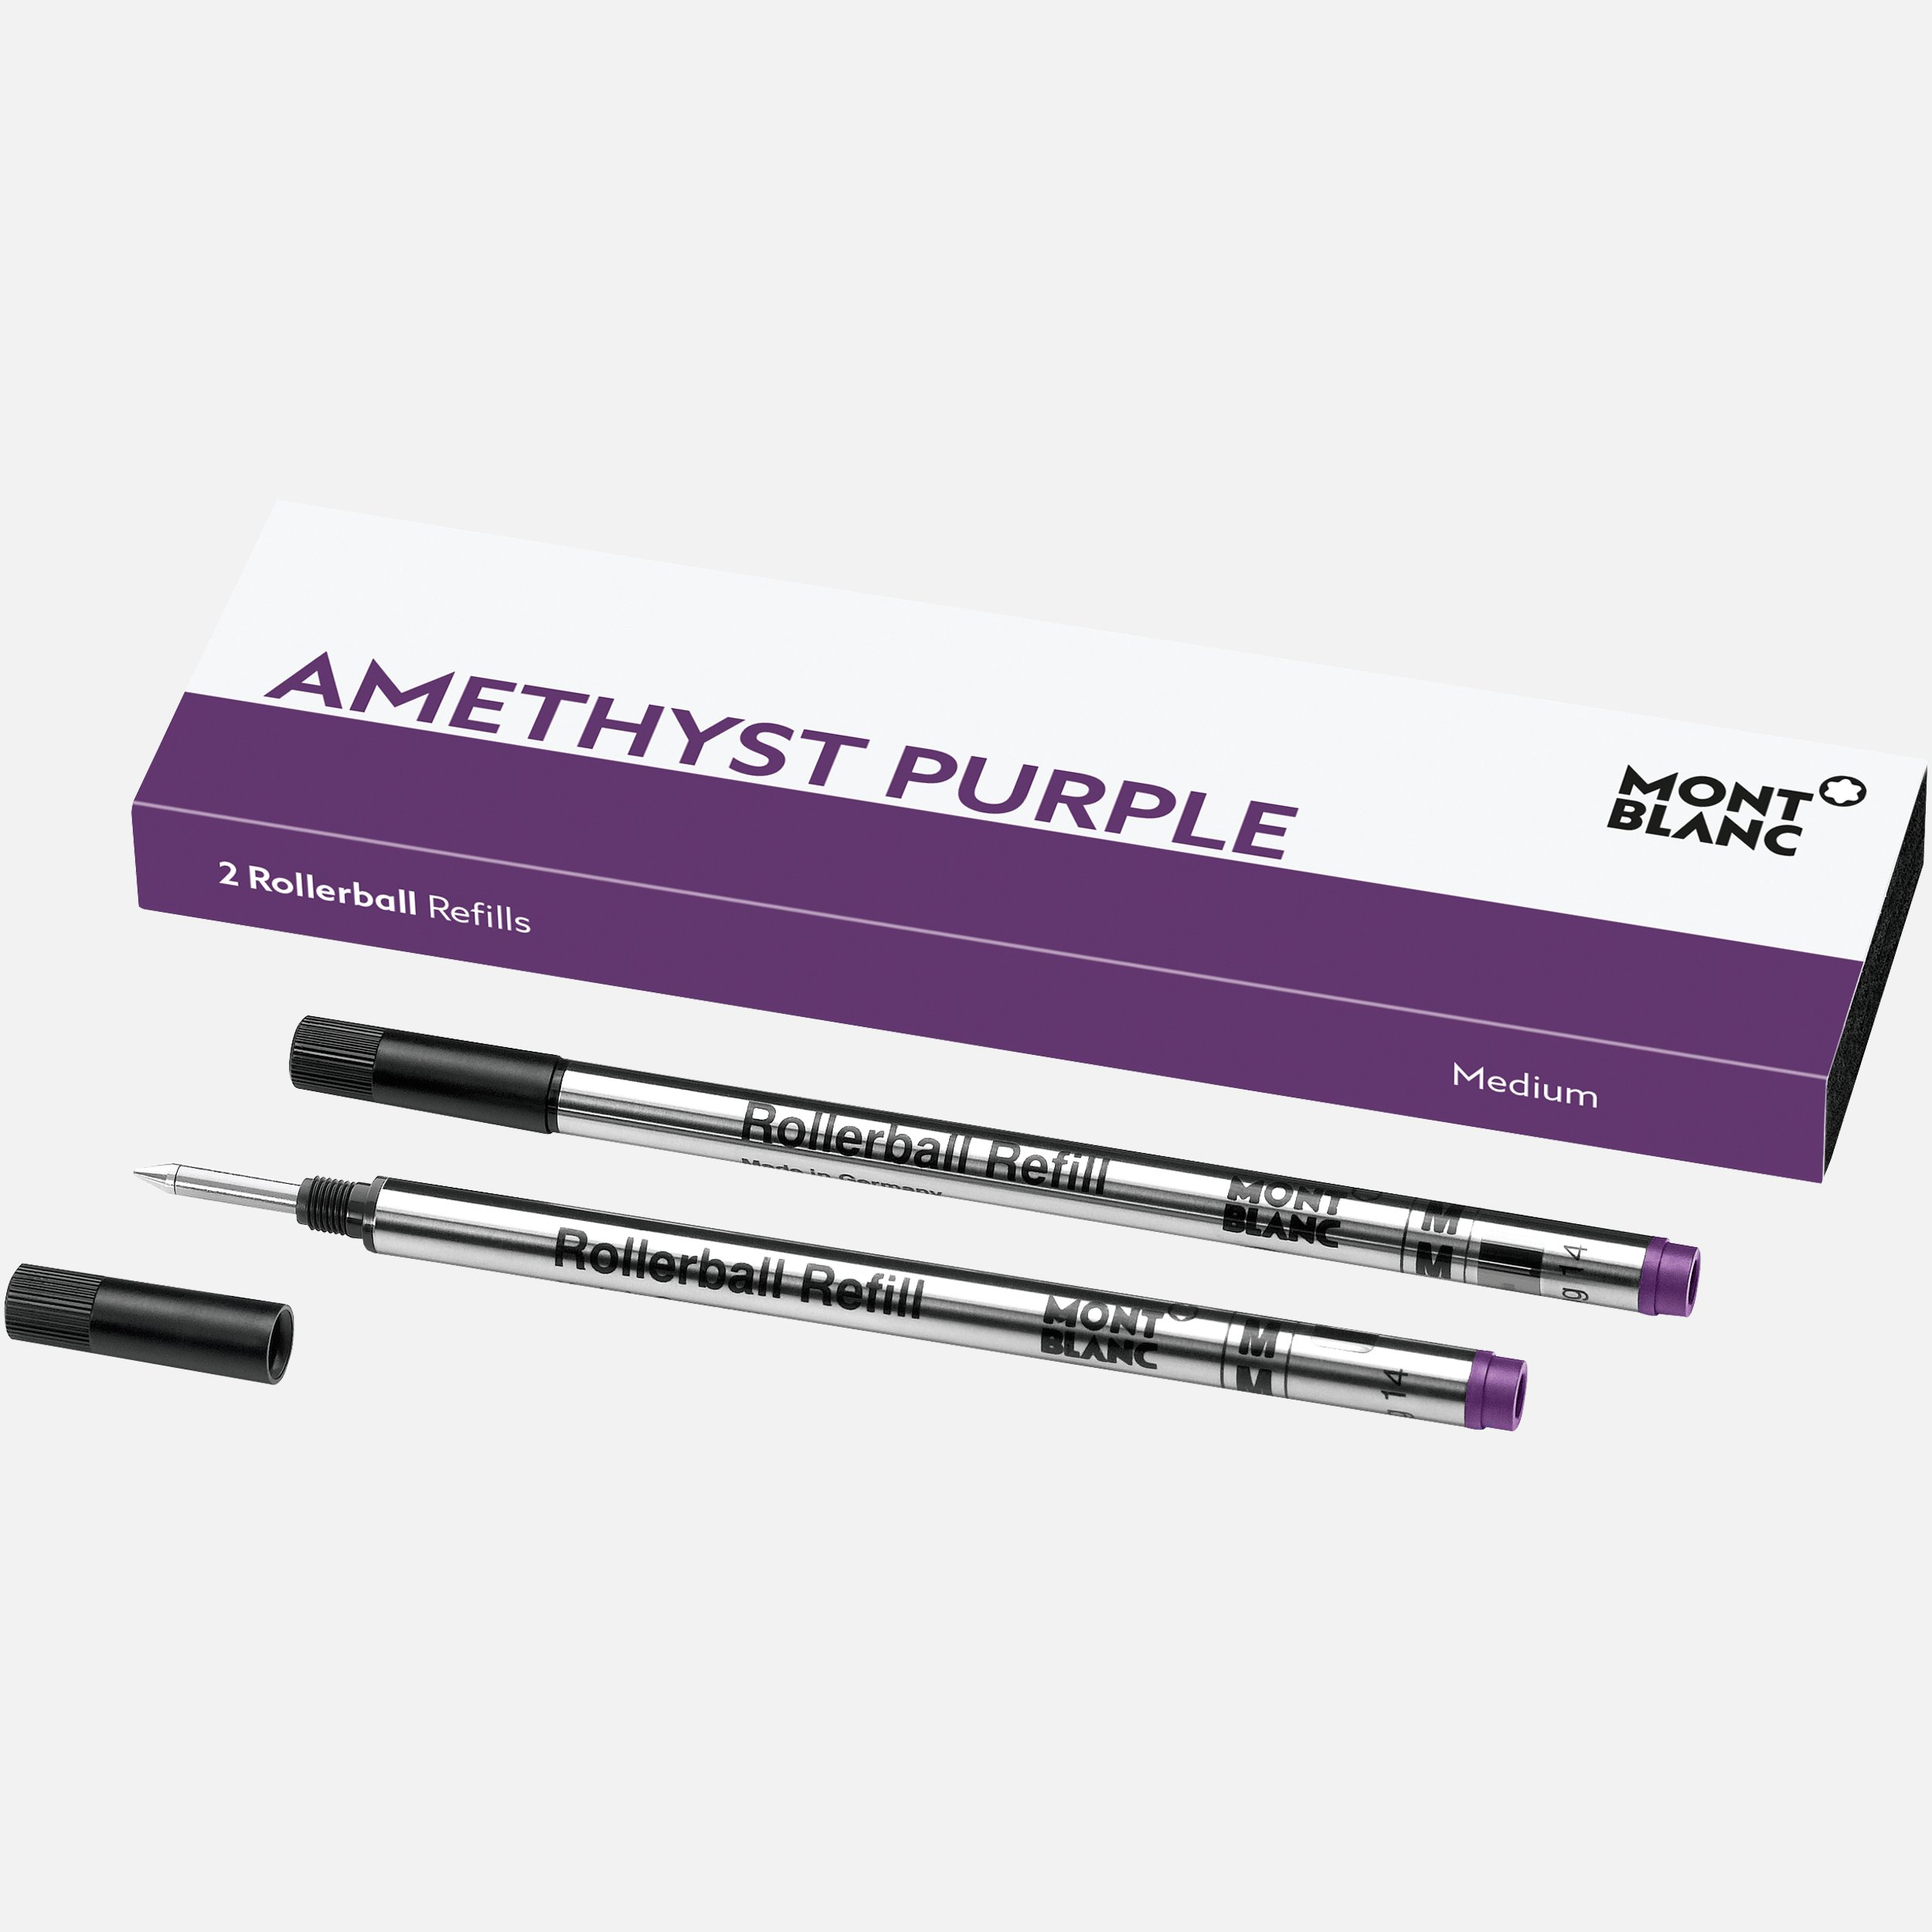 2 recharges pour rollerball (M) Amethyst Purple, Montblanc